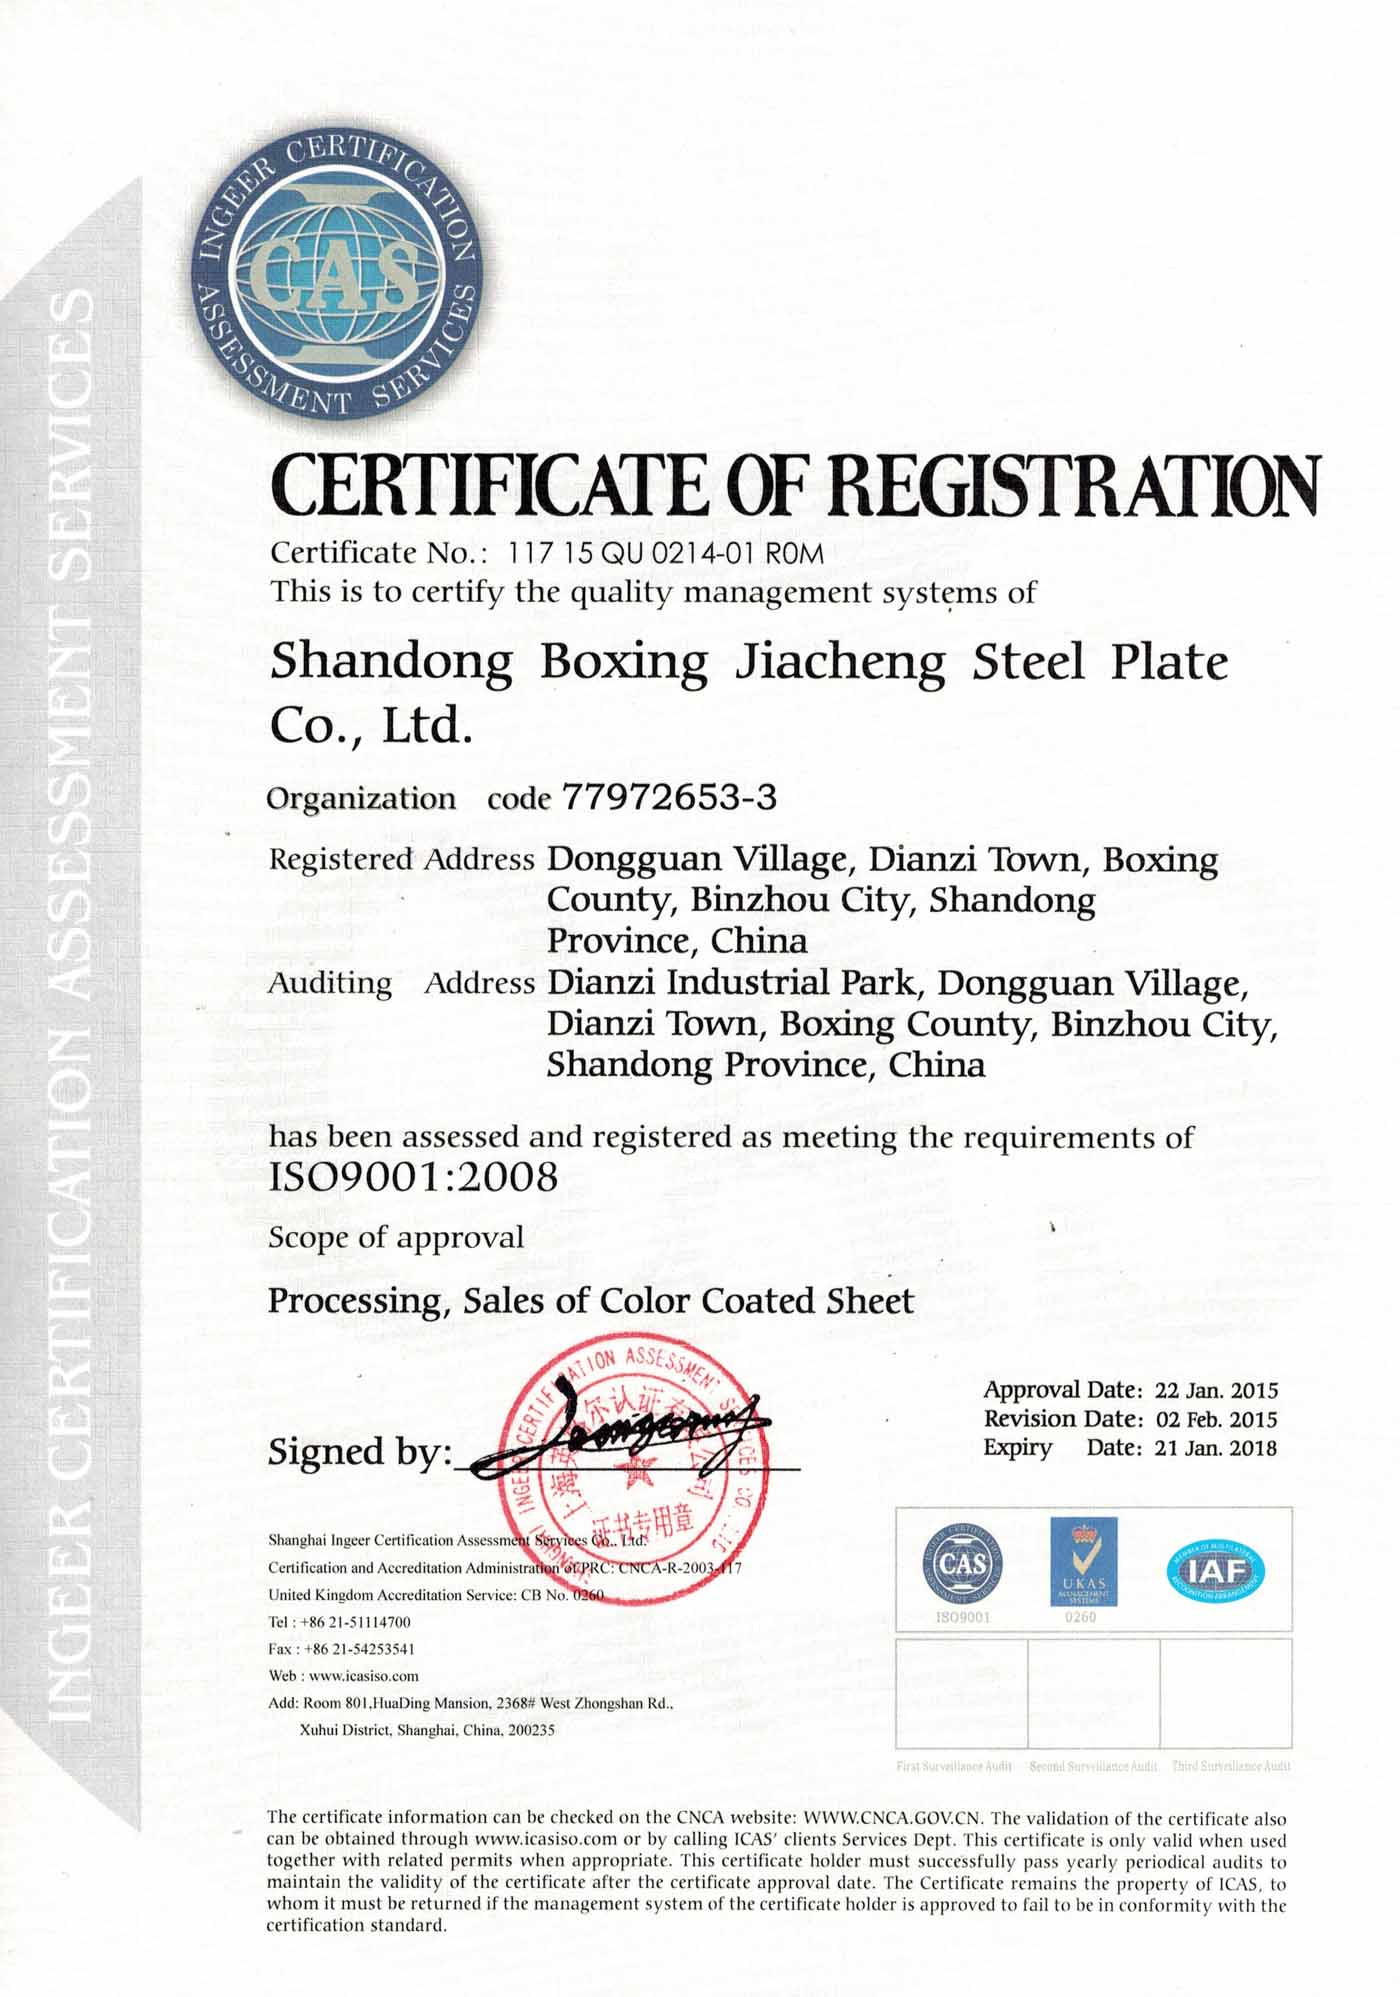 ISO9001:2008 Certificate of Registration(English Version)